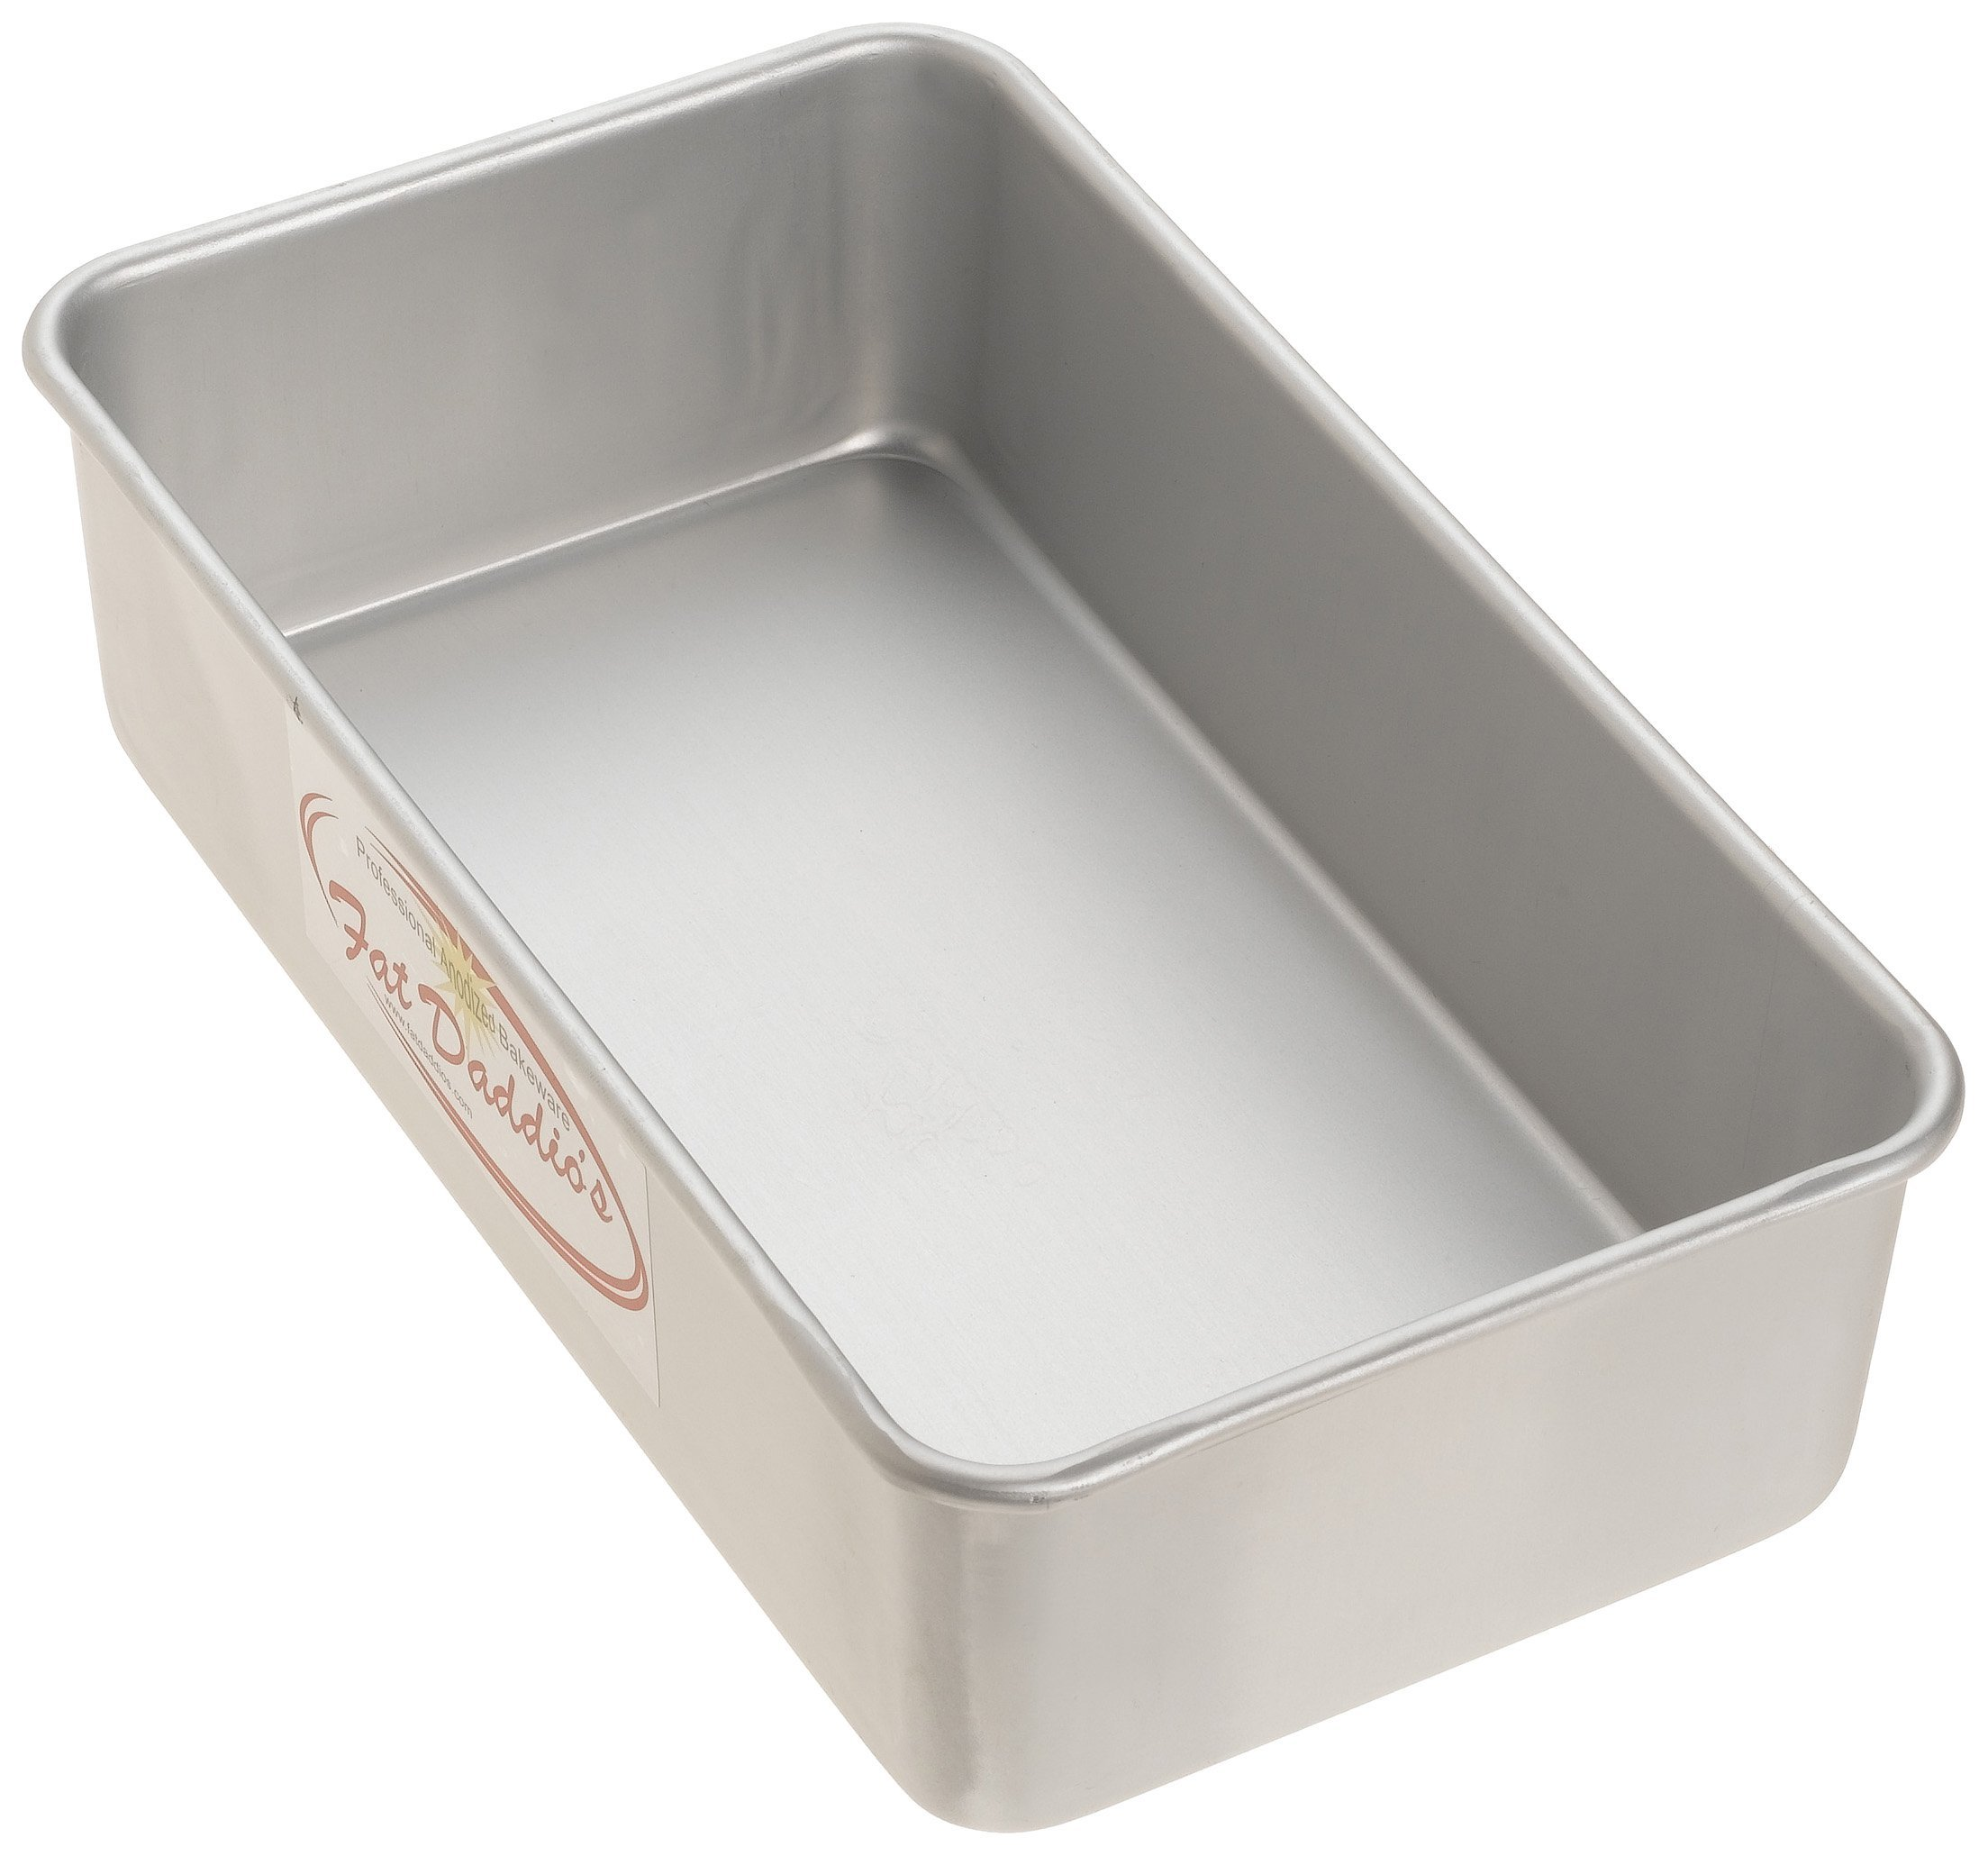 Fat Daddio's BP-5643 Anodized Aluminum Bread Pan Single, 9 Inches by 5 Inches by 2 1/2 Inches